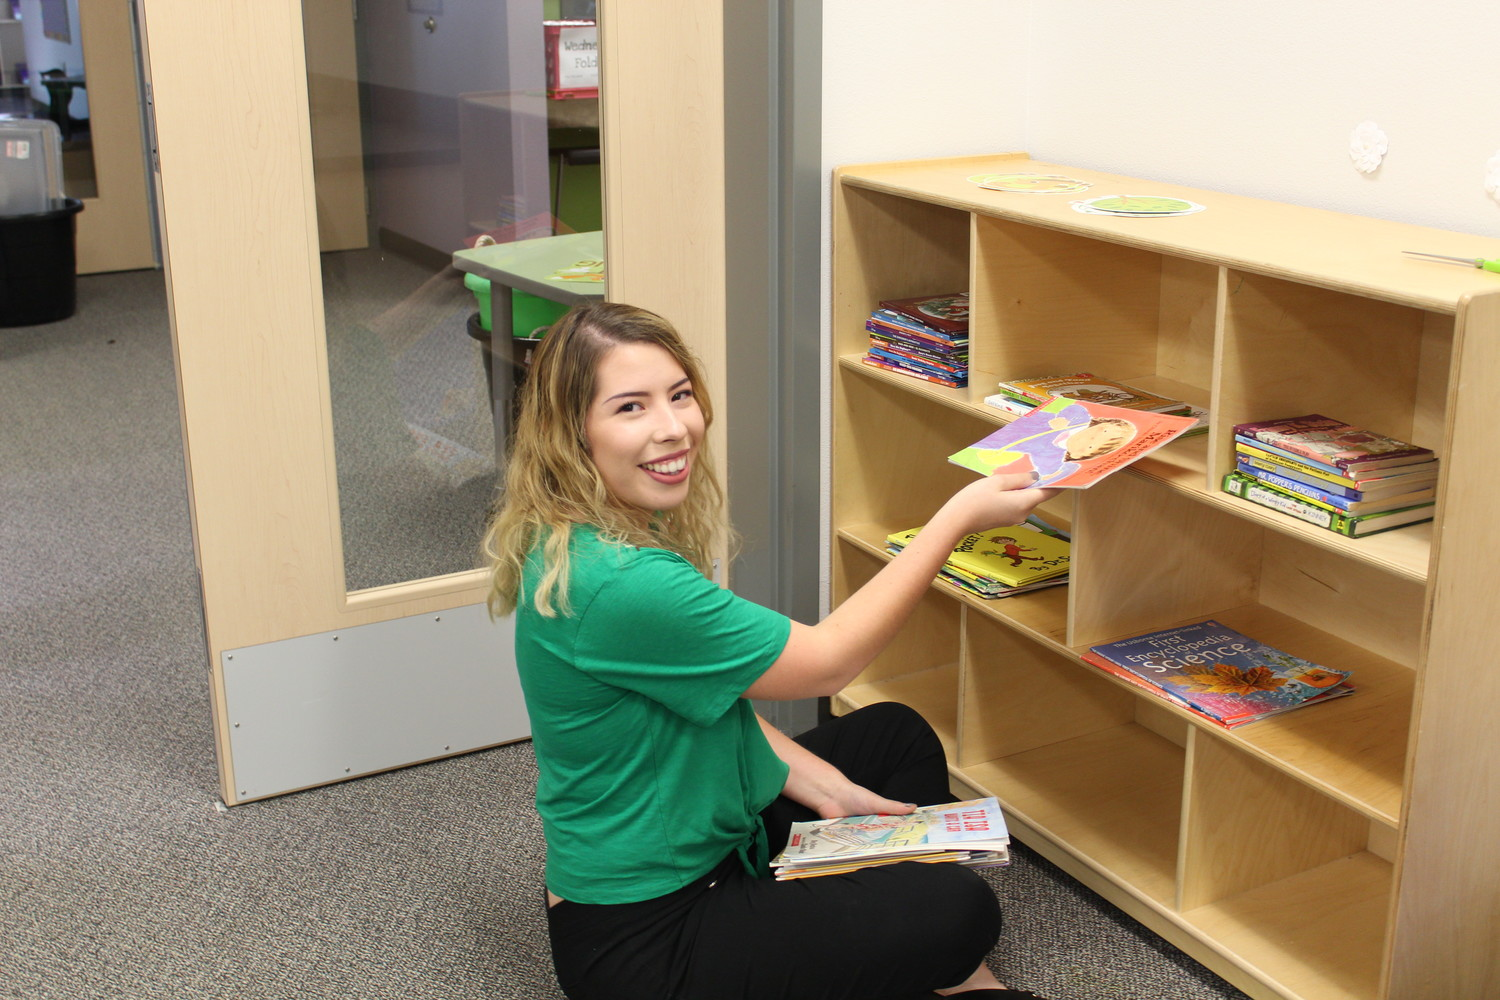 New Camacho Elementary teacher Elinore Ramos organizes books in her second grade classroom in preparation for the new school year.